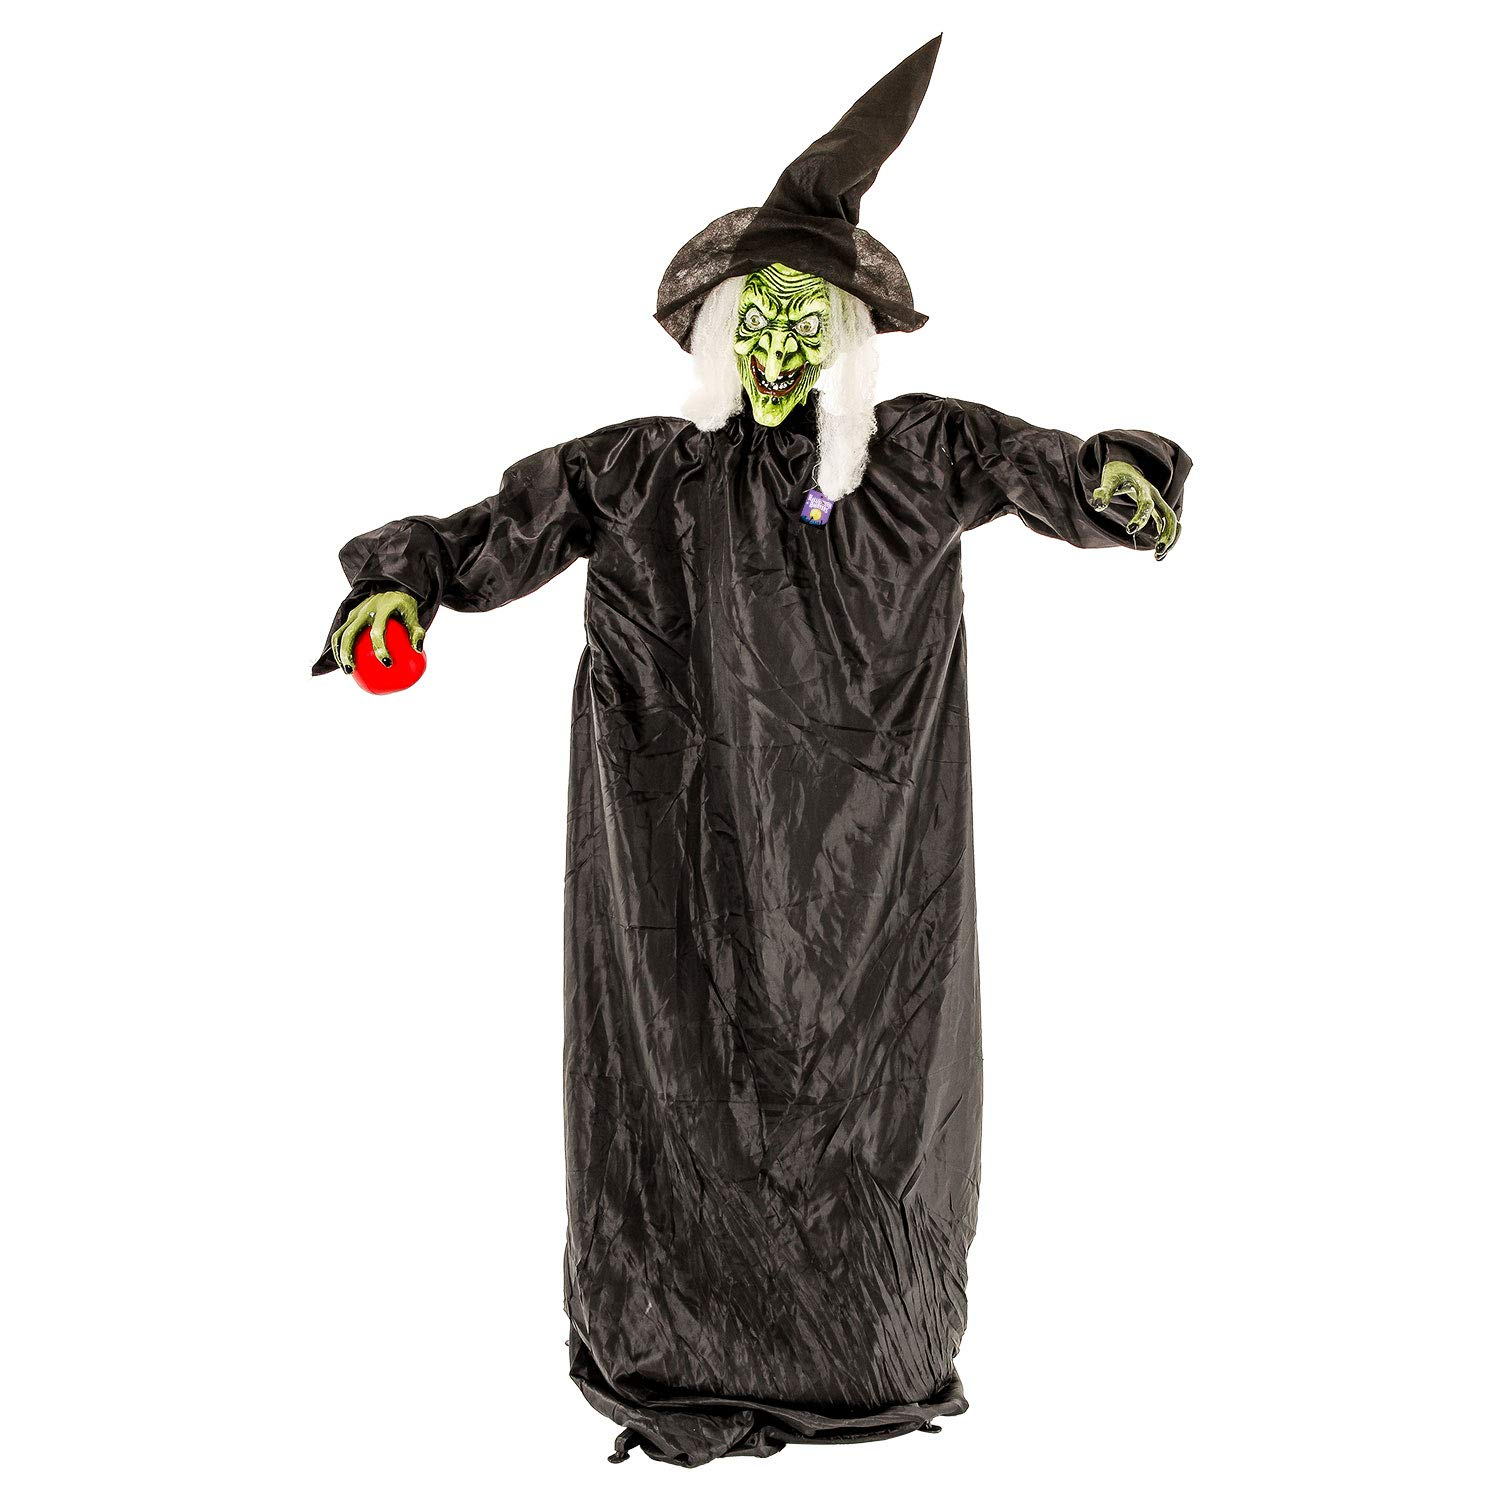 Halloween Haunters 5 foot Animated Standing Wicked Witch with Red Apple Casting Spell and Cackles Prop Decoration - Flashing Red LED Eyes, Black Hat & Green Face, Laughs - Haunted House Entryway Party